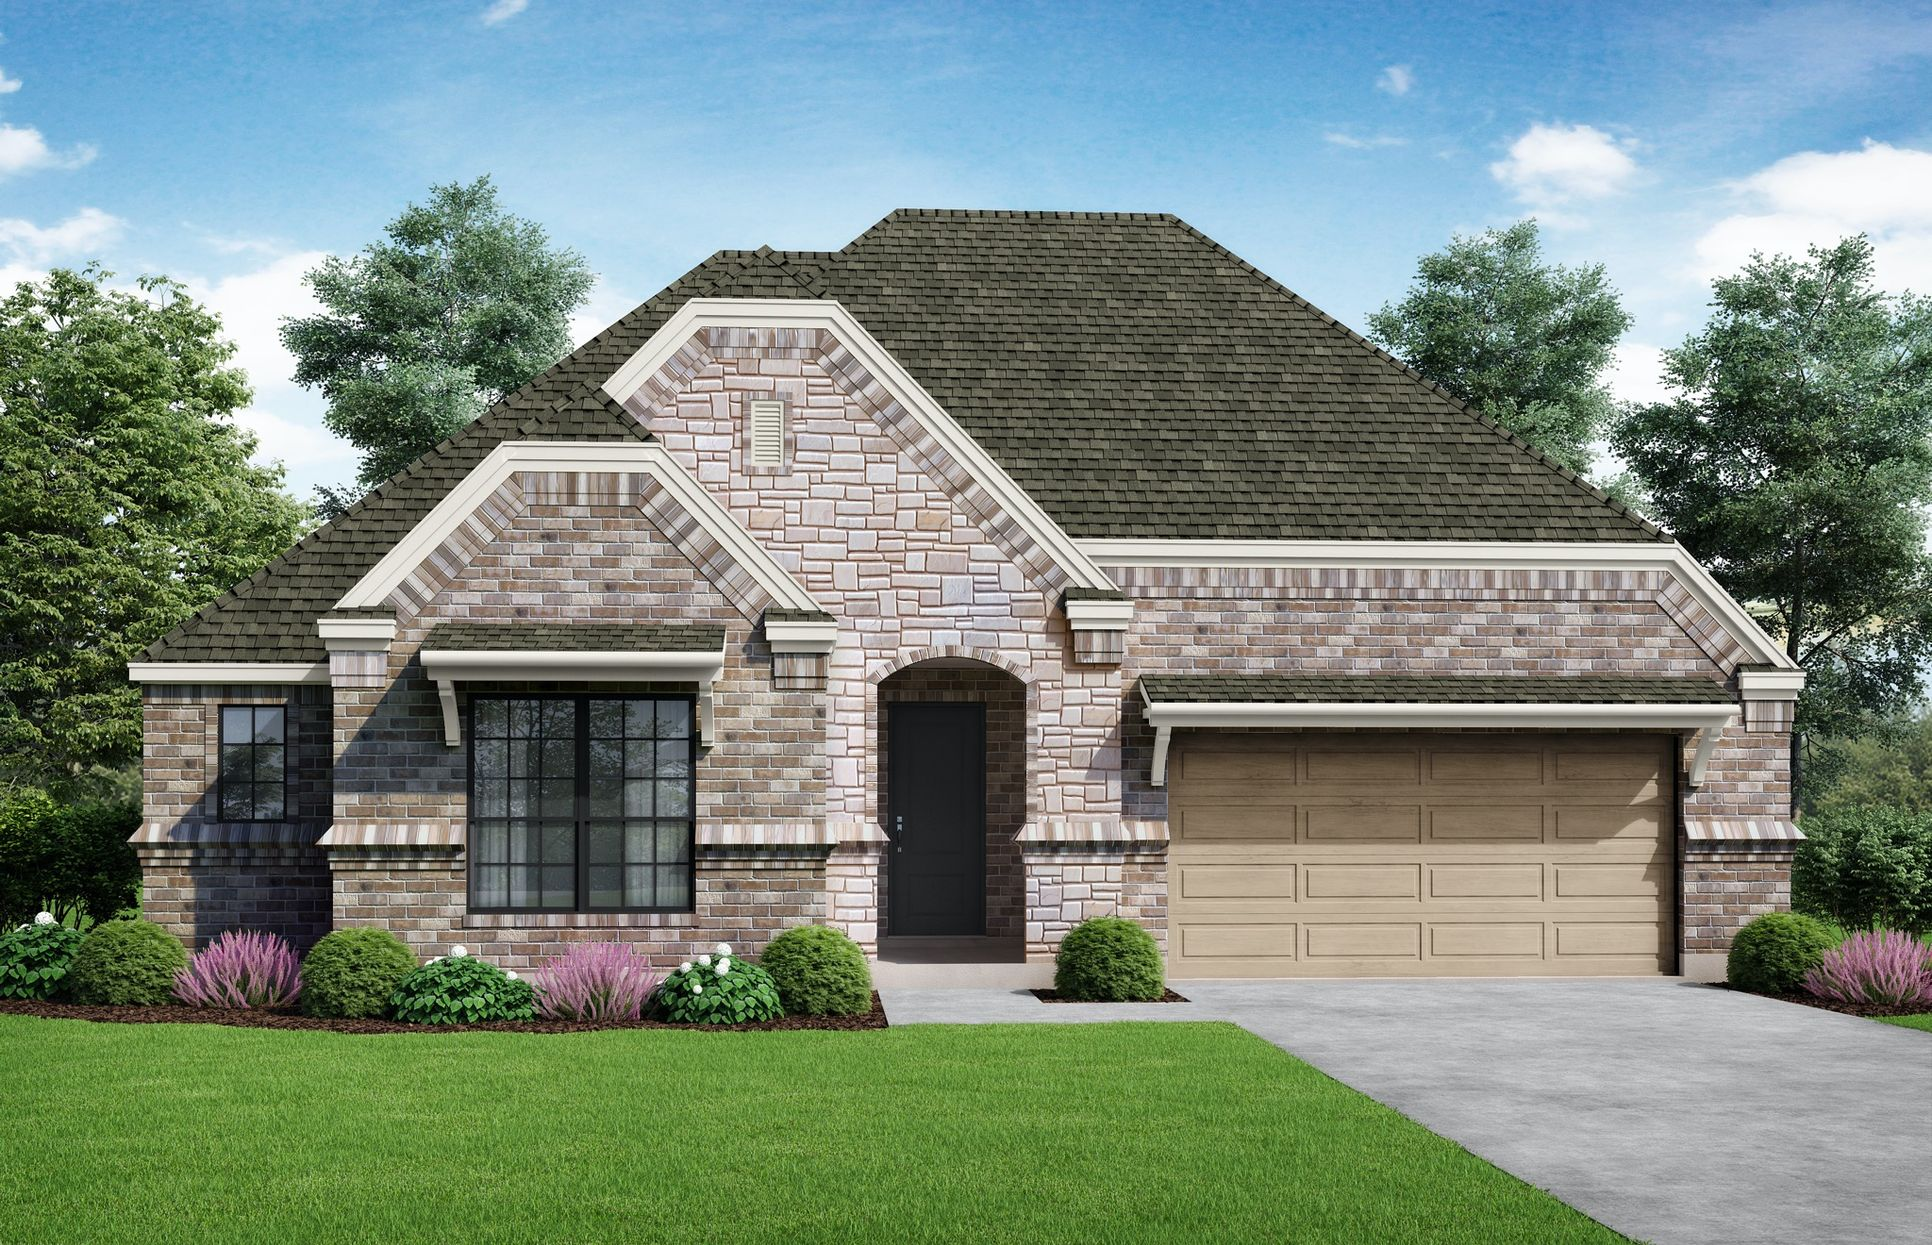 Granada Elevation A. Images are artist renderings and will differ from the actual home built.:Granada Elevation A